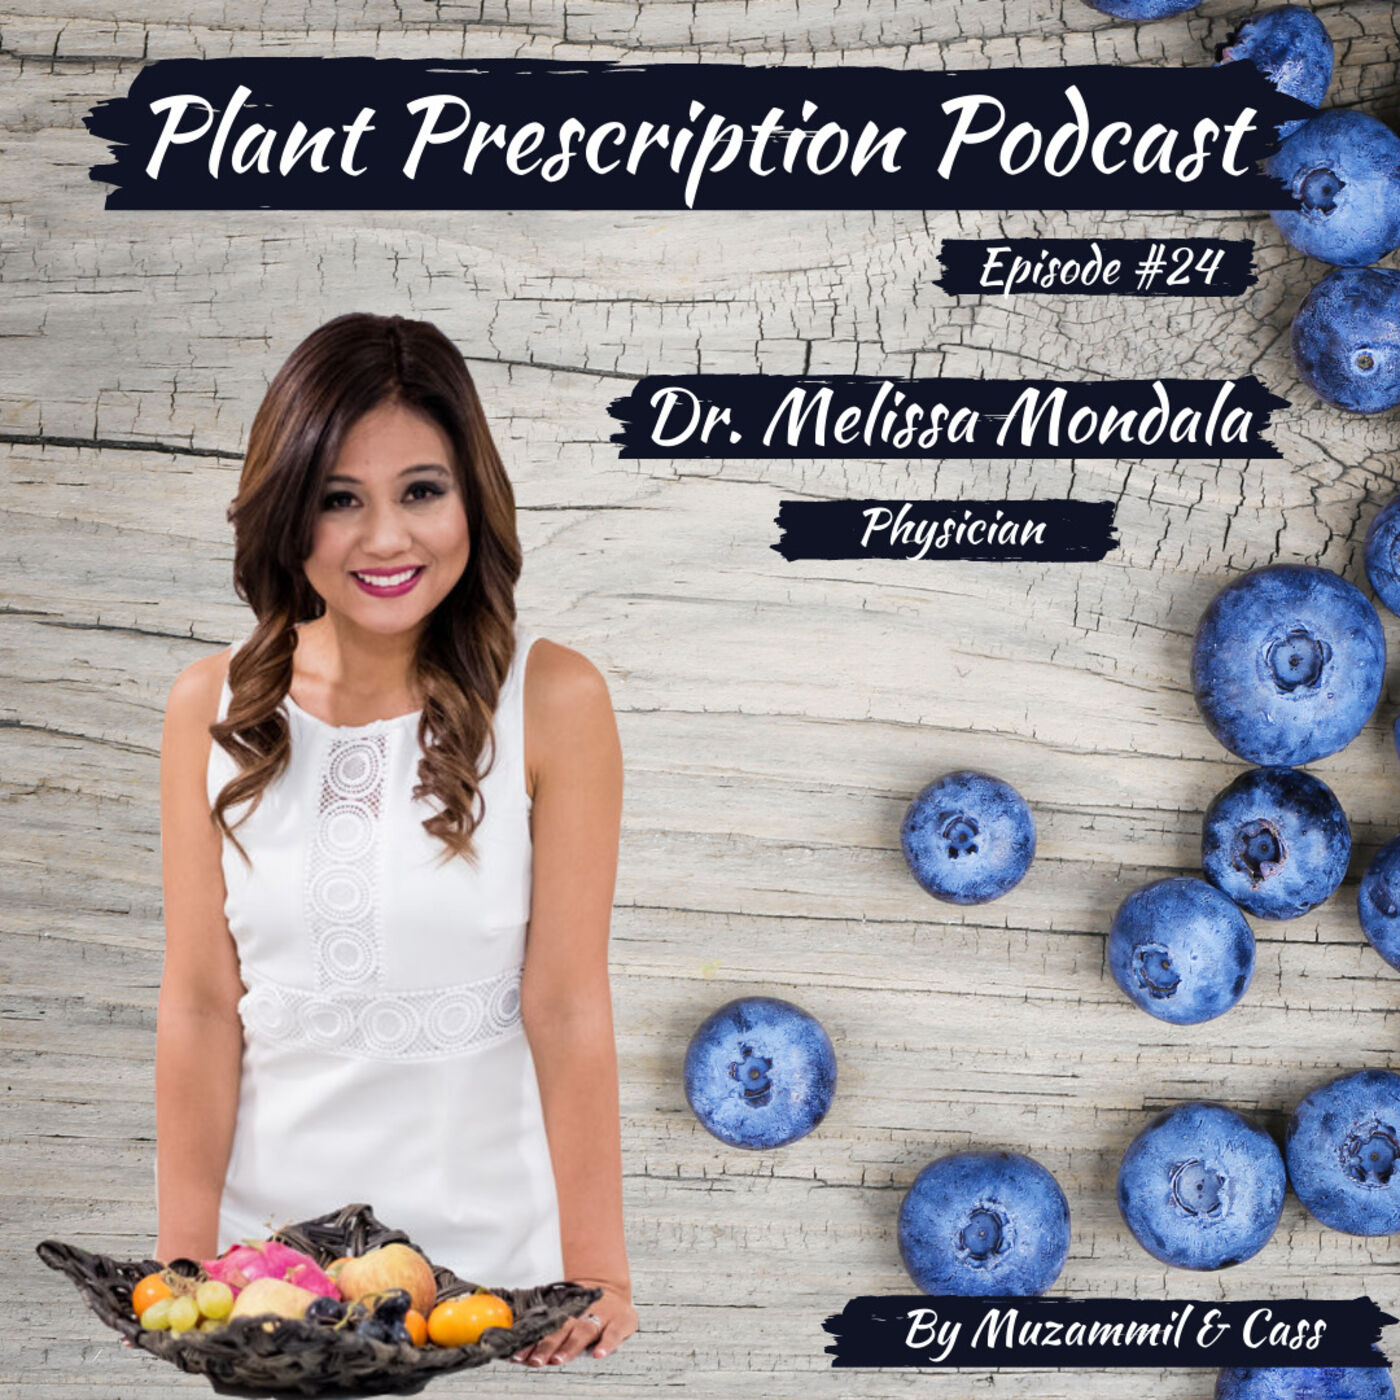 Lifestyle medicine & the role of diet on our health with Dr. Melissa Mondala